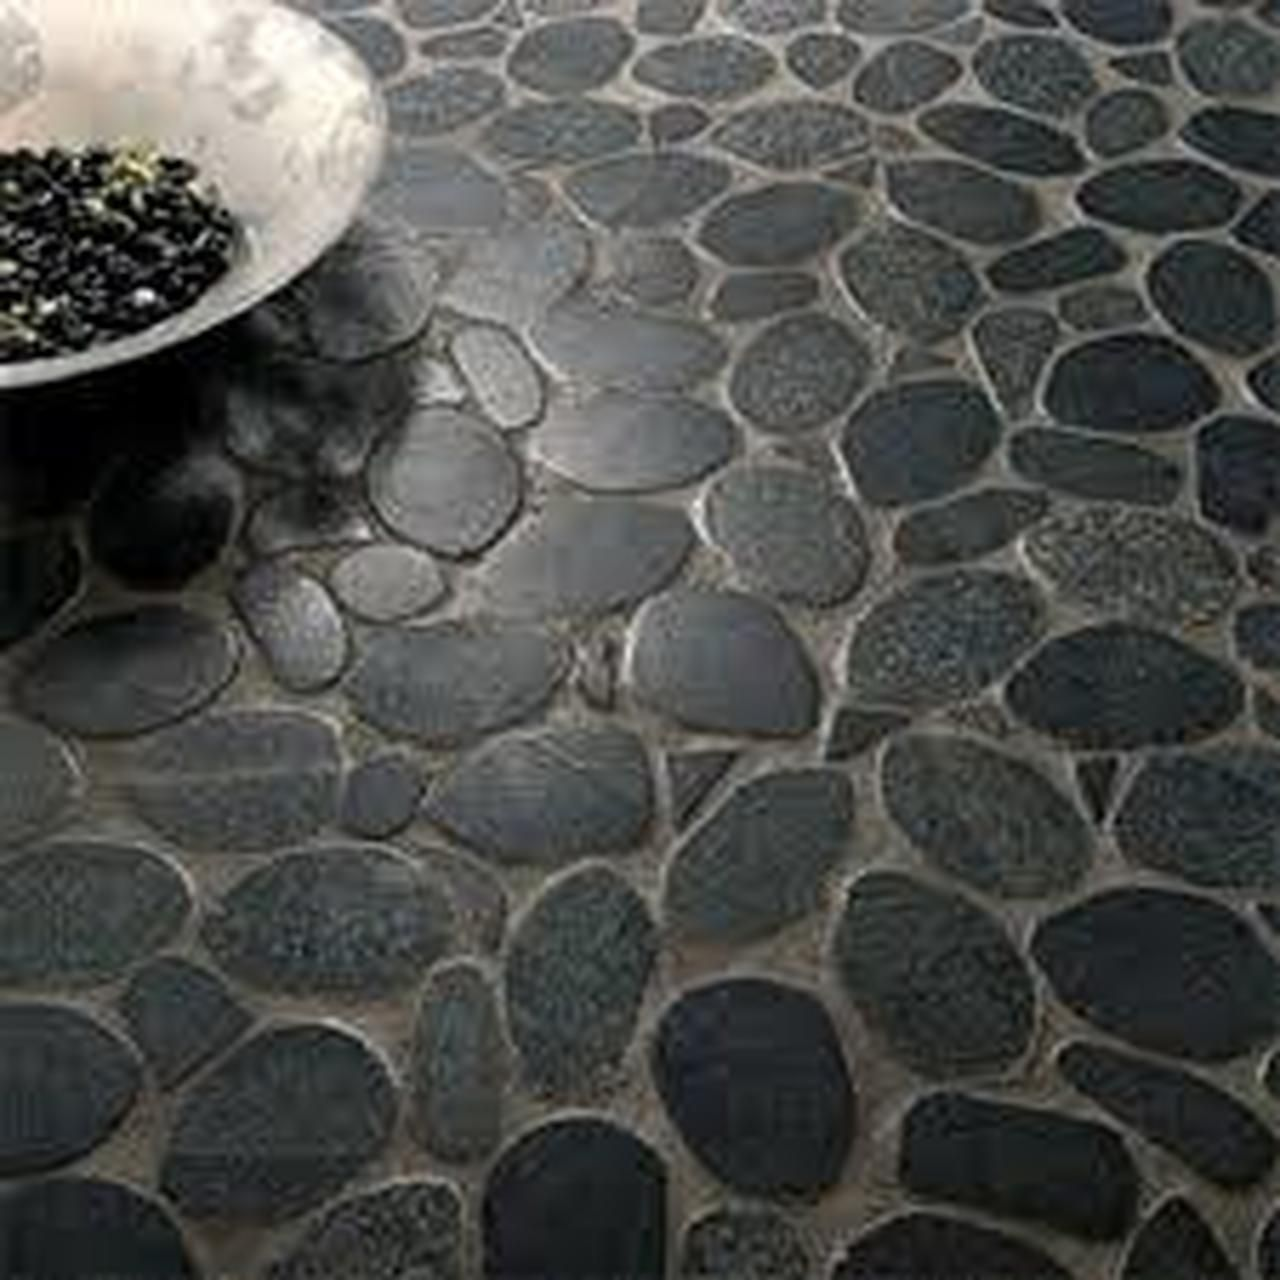 Zen Tahitian Black Sand Flat Polished Pebbles Mosaics 12x12 Pebble Mosaic Cottage Style Bathrooms Bathroom Styling